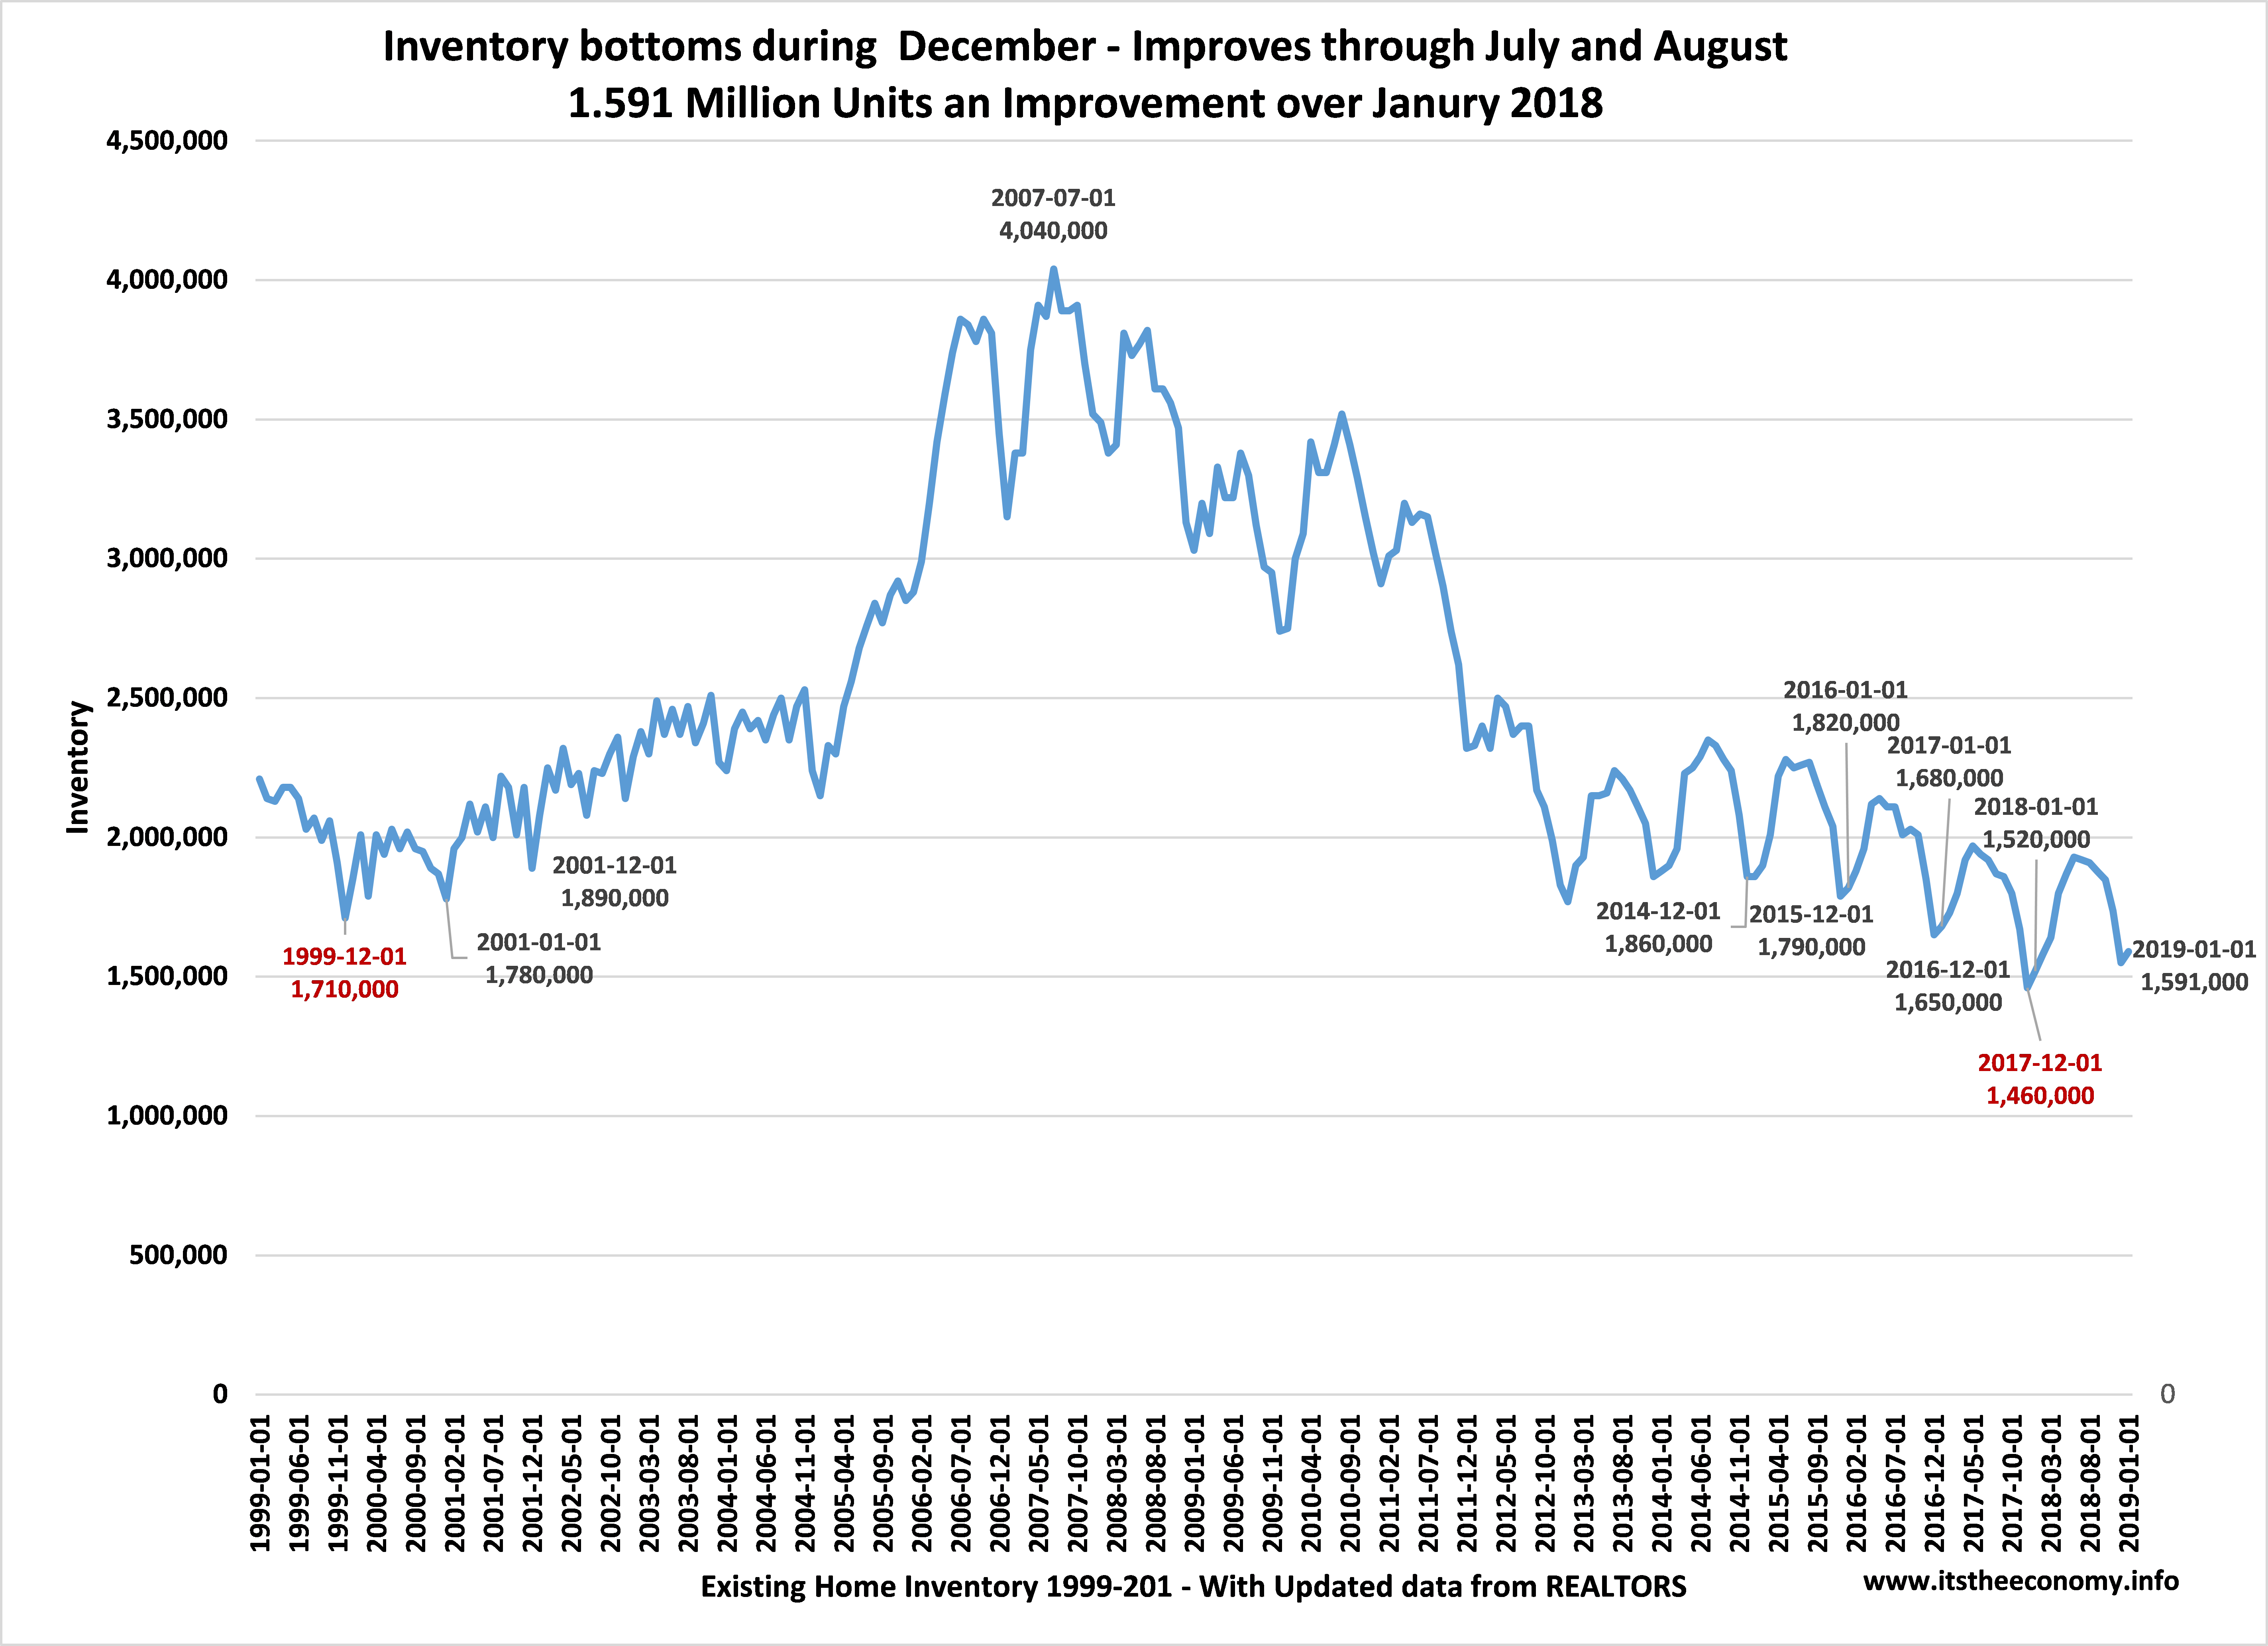 Existing Home inventory bounced off the December low and was higher than the January 2018 level. Inventory is still near historic lows.